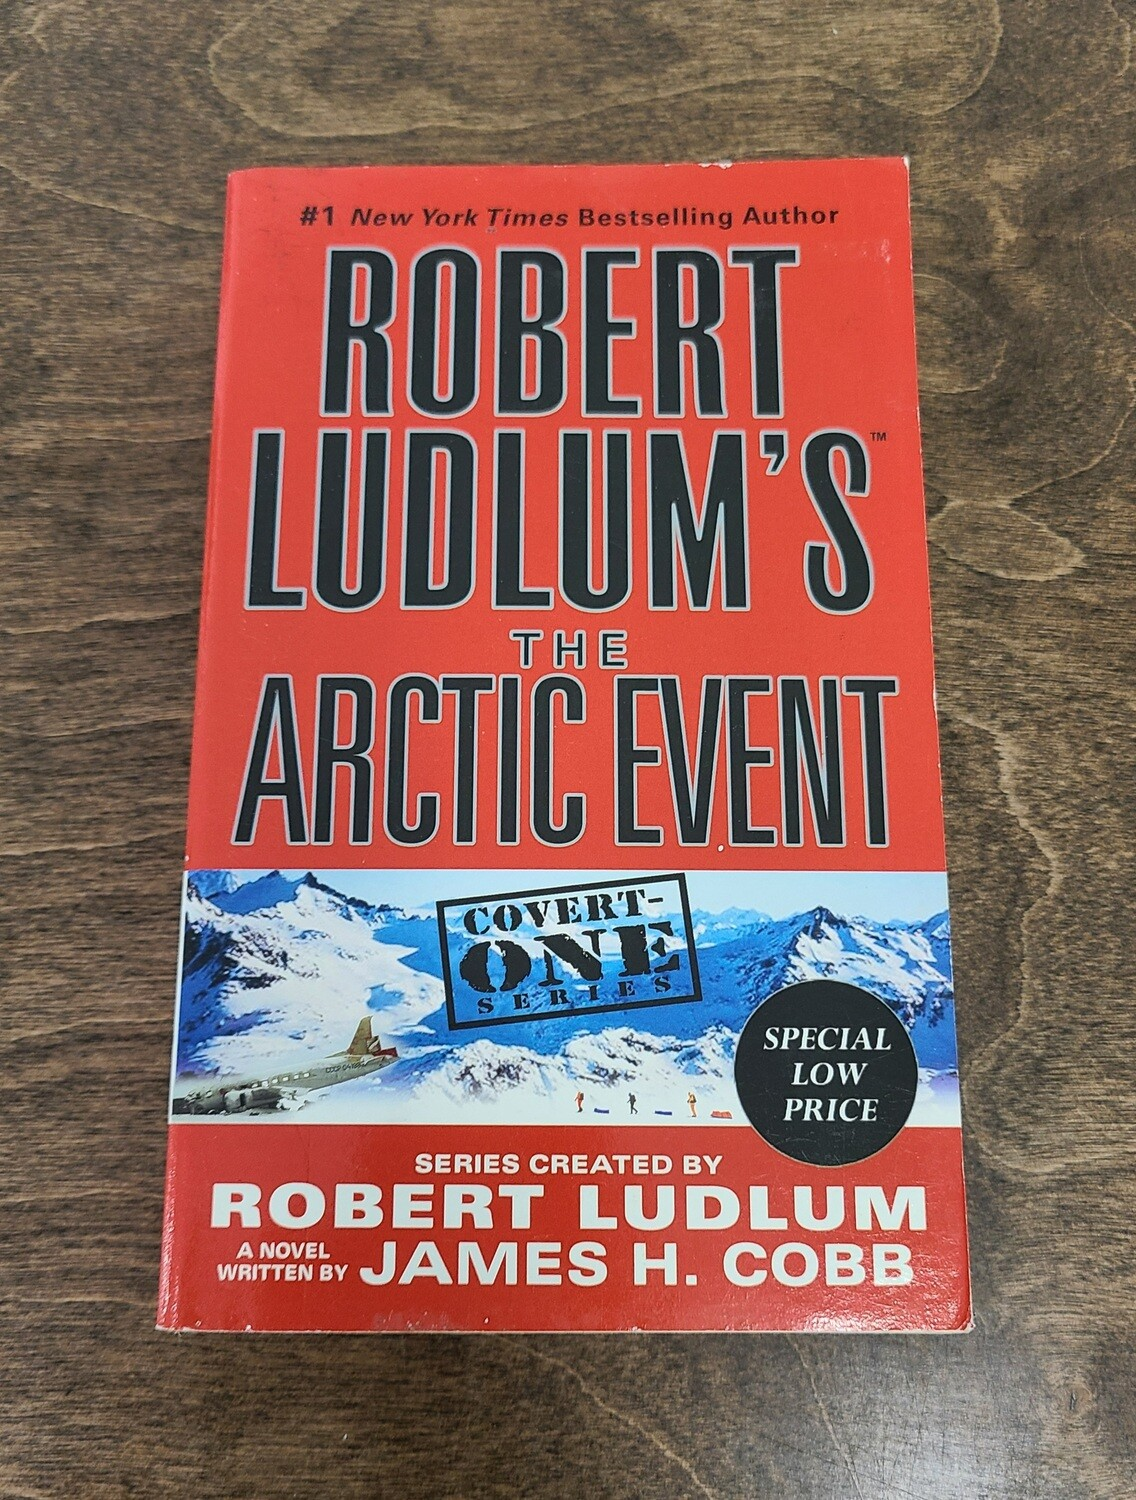 Robert Ludlum's The Arctic Event by Robert Ludlum and James H. Cobb